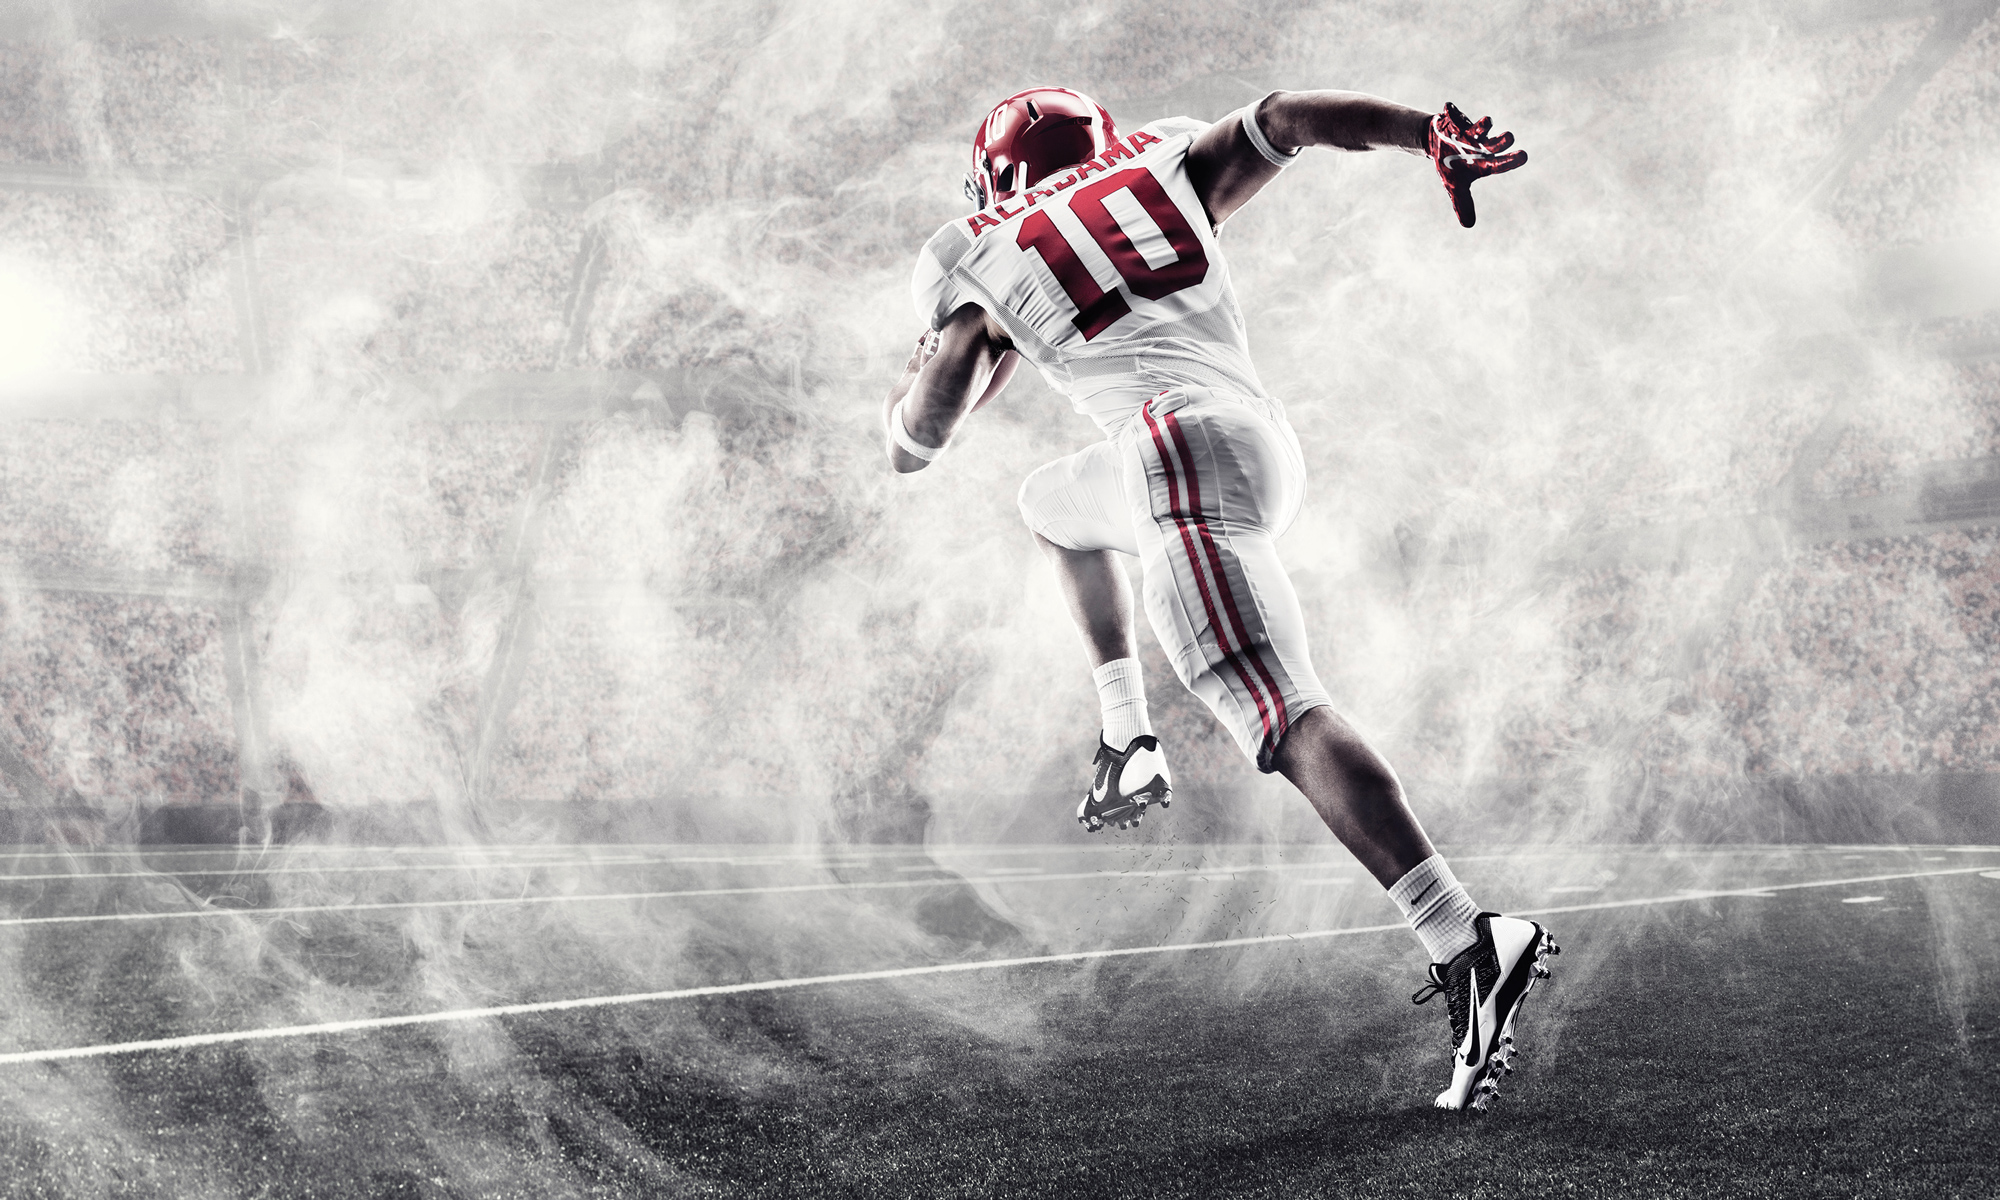 50 Nike College Football Wallpaper on WallpaperSafari